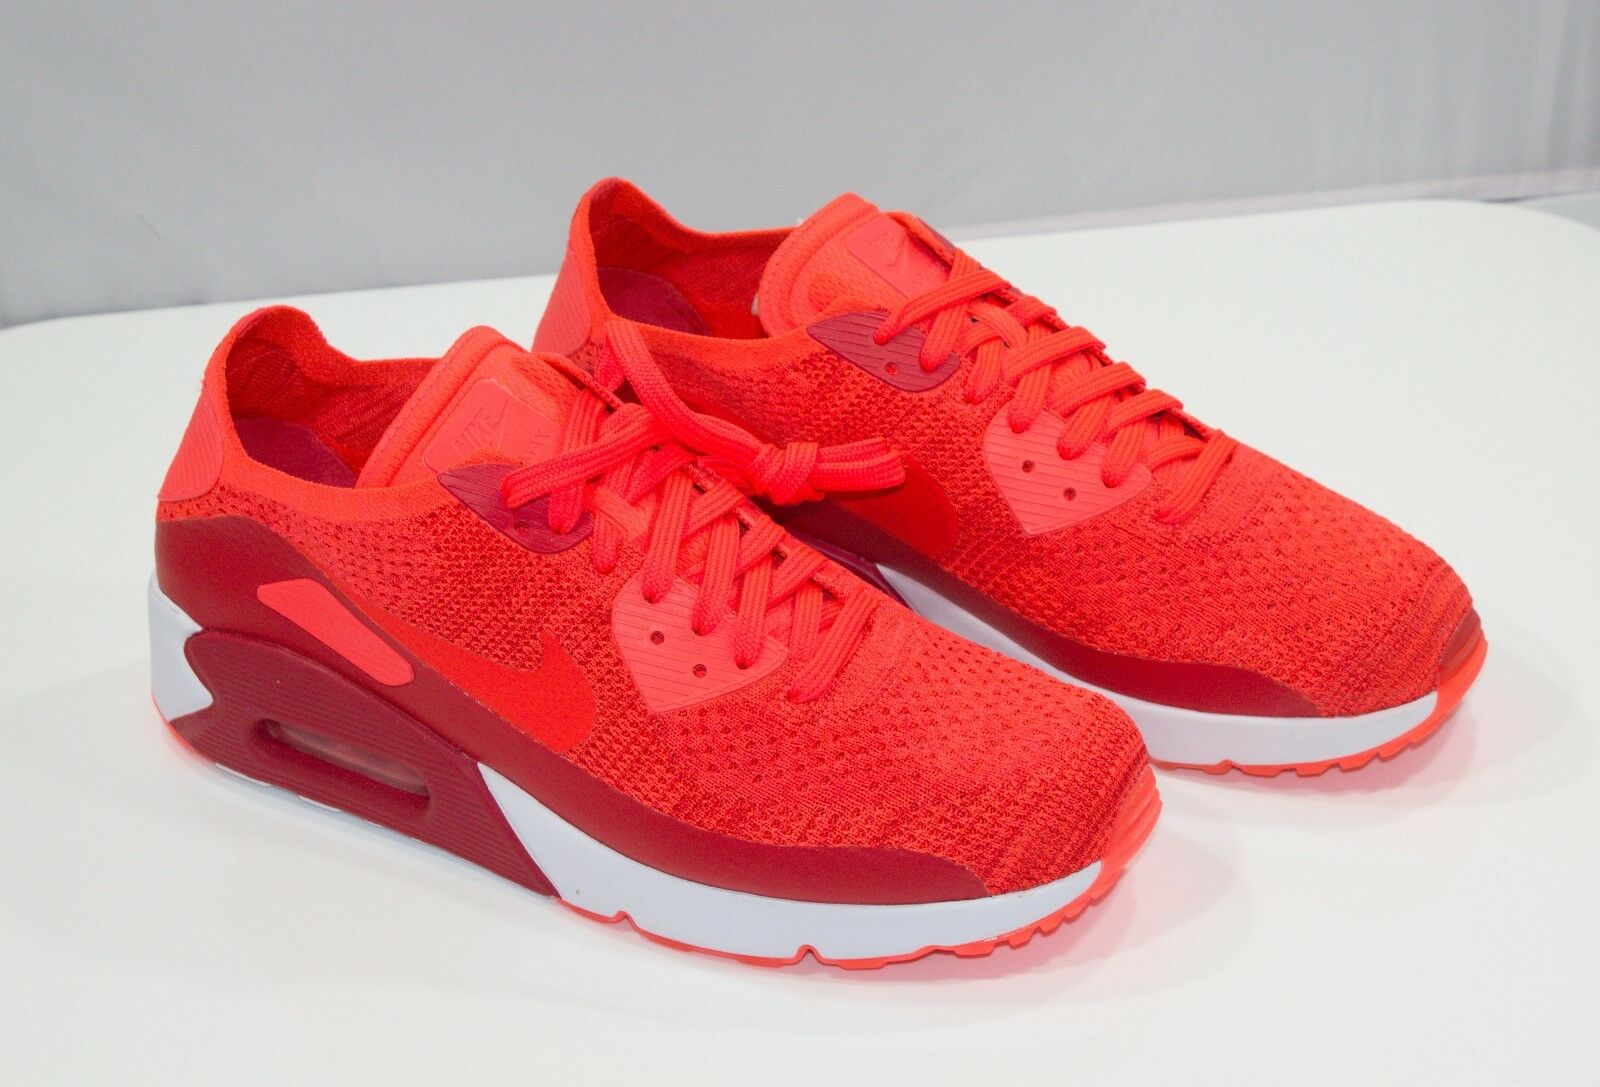 NIKE AIR MAX 90 ULTRA 2.0 875943 875943 875943 600 Size10 US Fast Free Shipping REAL PICTURES c56b8f